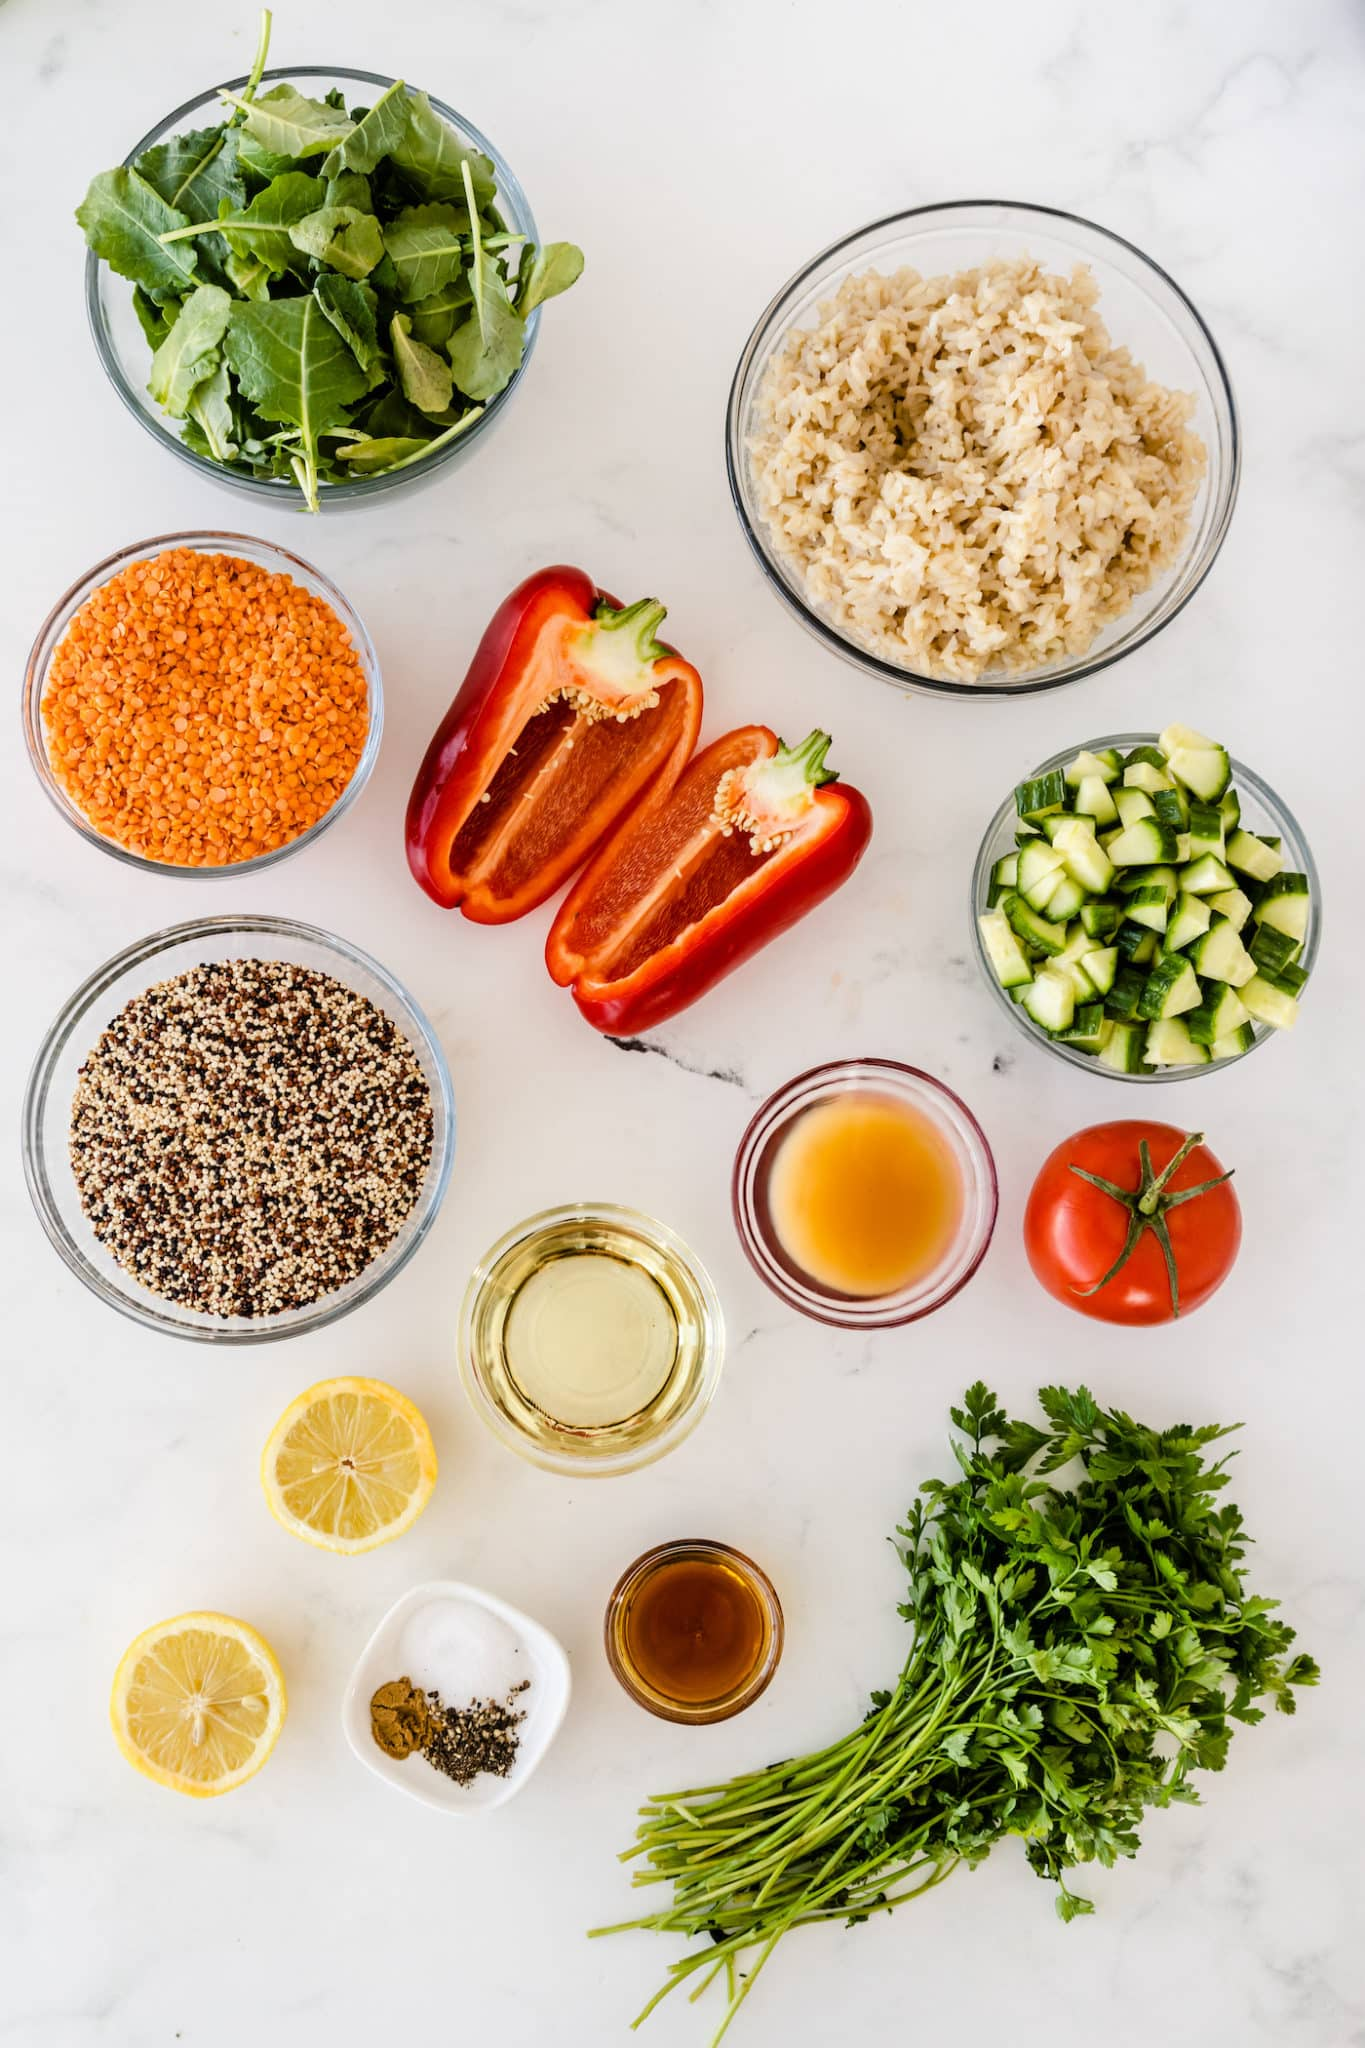 ingredients laid out on a table to make the costco quinoa salad